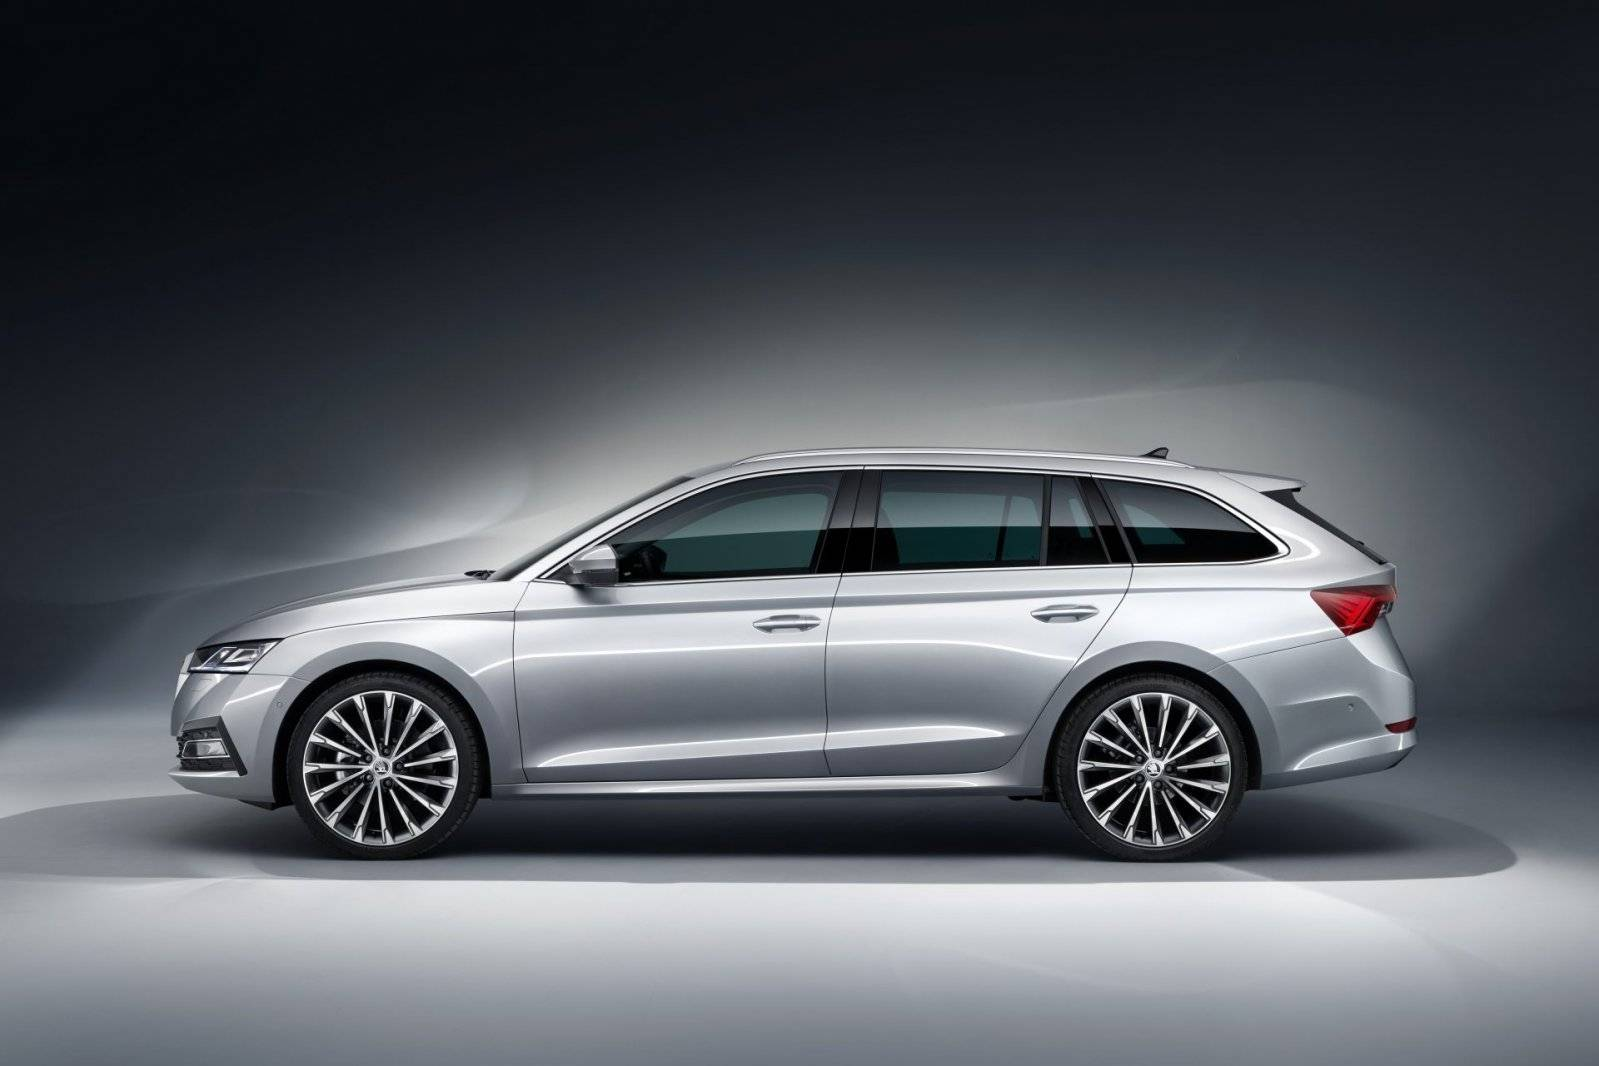 https://images.autowereld.com/high/skoda-octavia-2020-11-b125b0.jpg